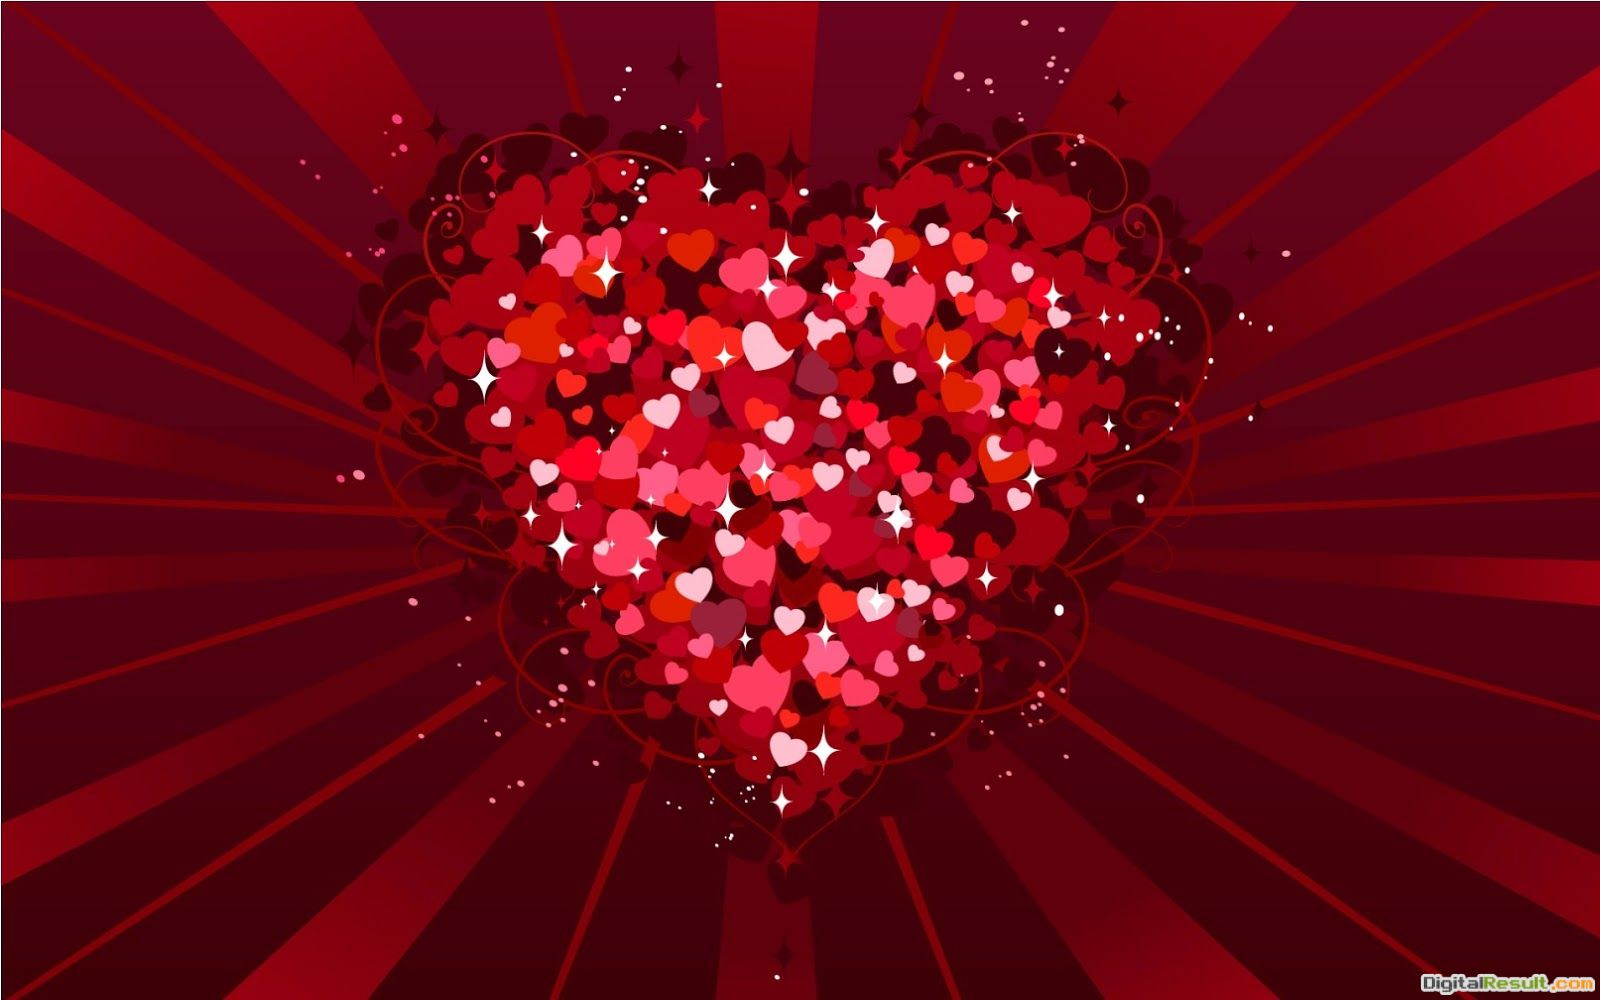 Pictures, Wallpaper 3D, Photos, Free Download: Valentine\'s Day Cards 1698